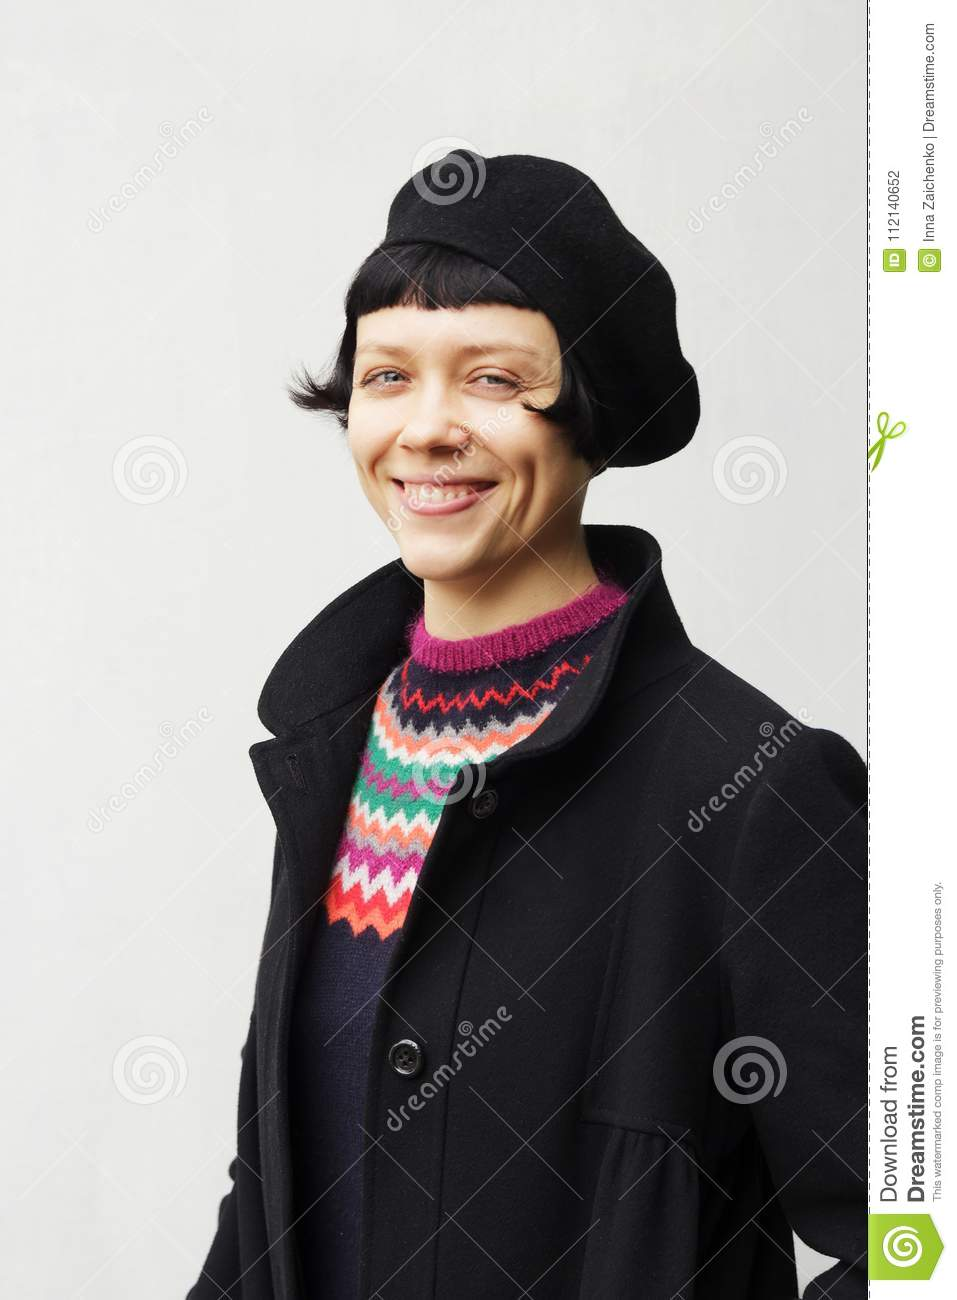 eac5534aa7dd2 Attractive Young Woman Wearing A Beret Stock Photo - Image of fresh ...